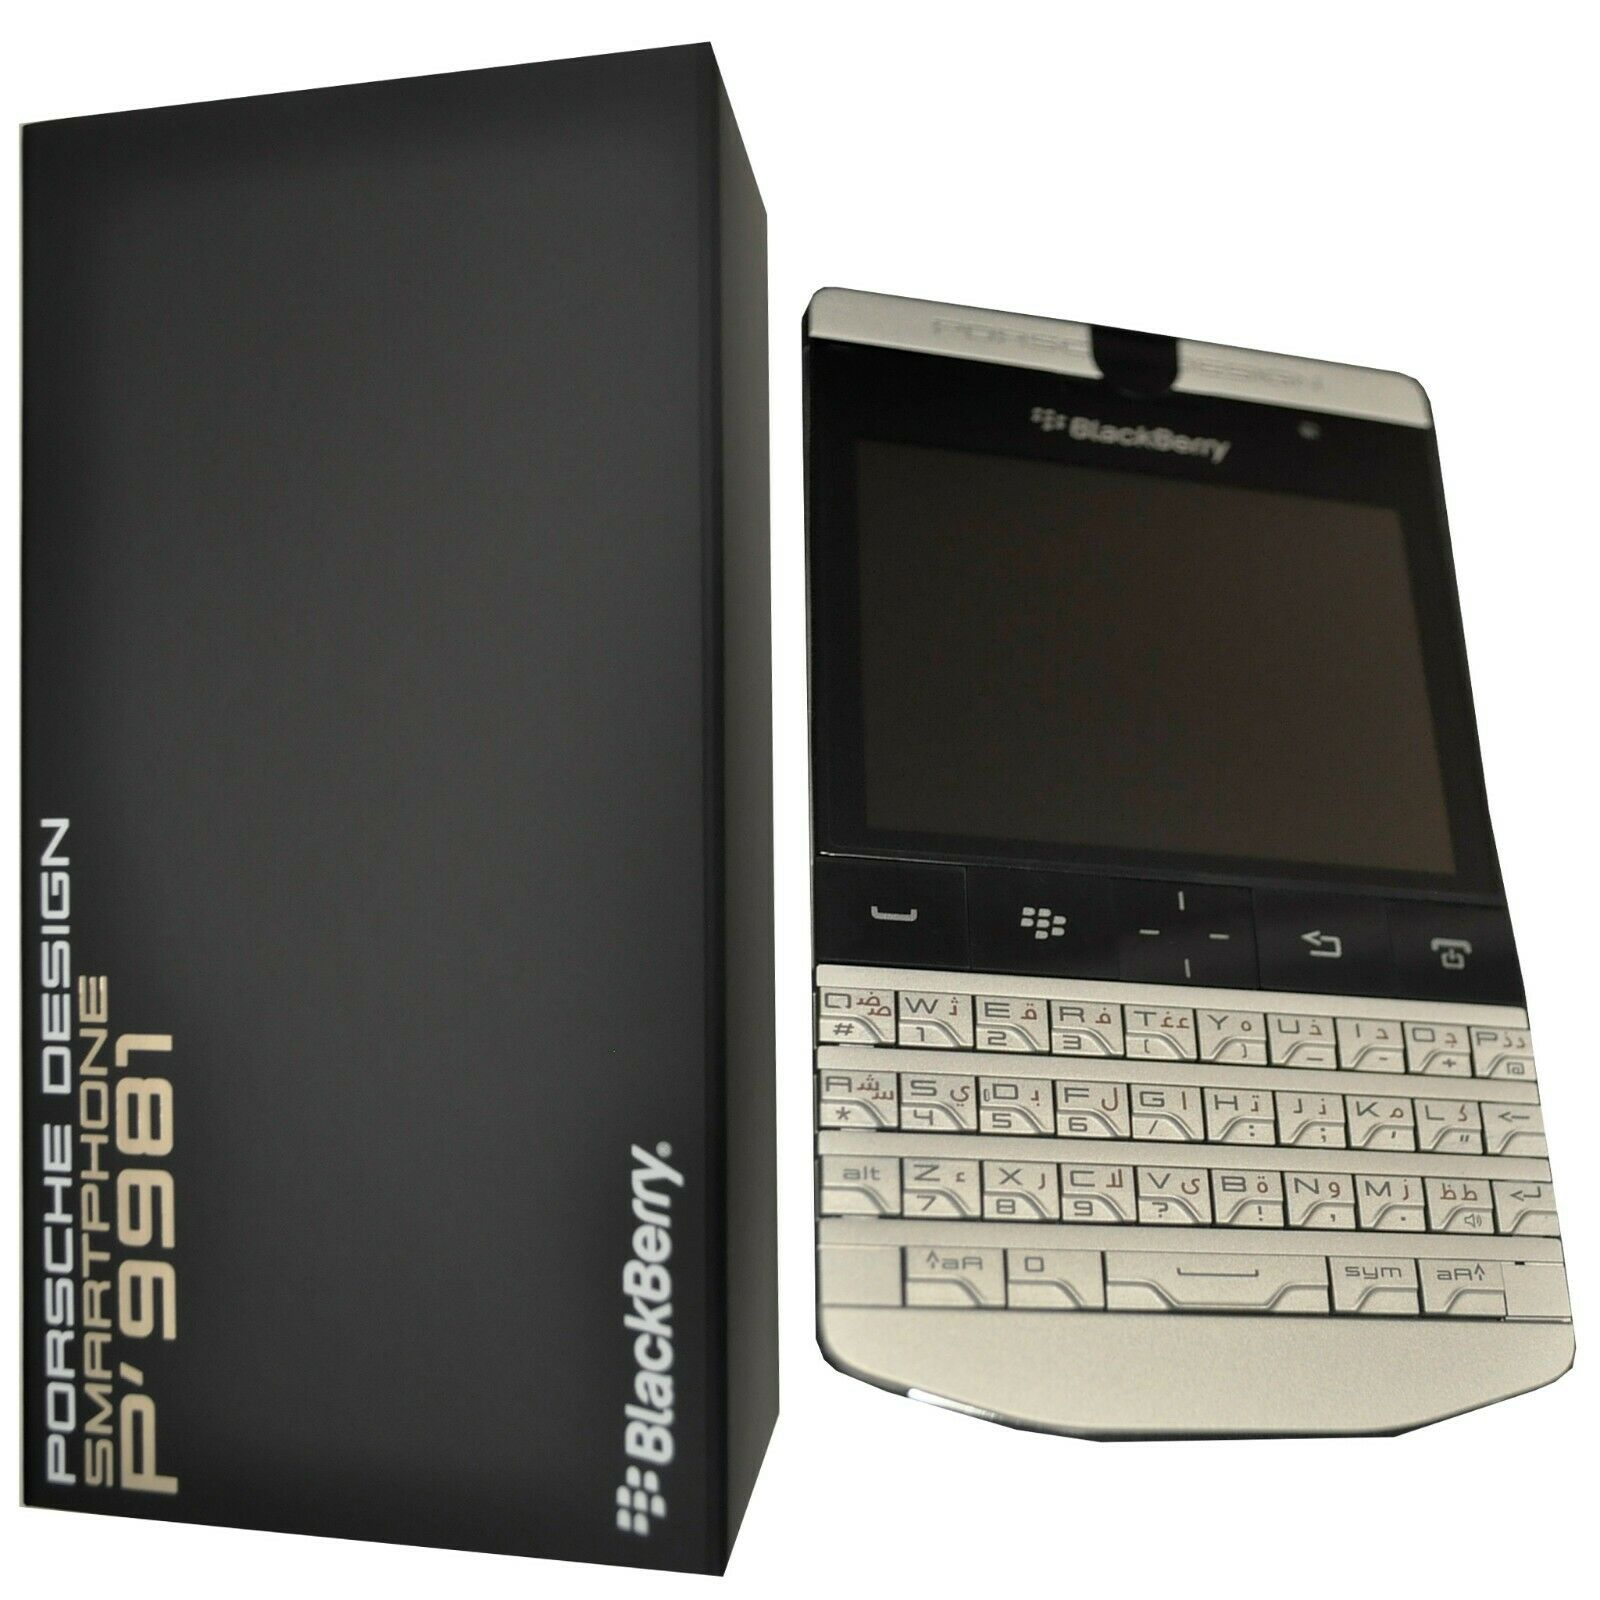 New BlackBerry Porsche Design P9981 QWERTY+Arabic Dark Platinum Factory Unlocked